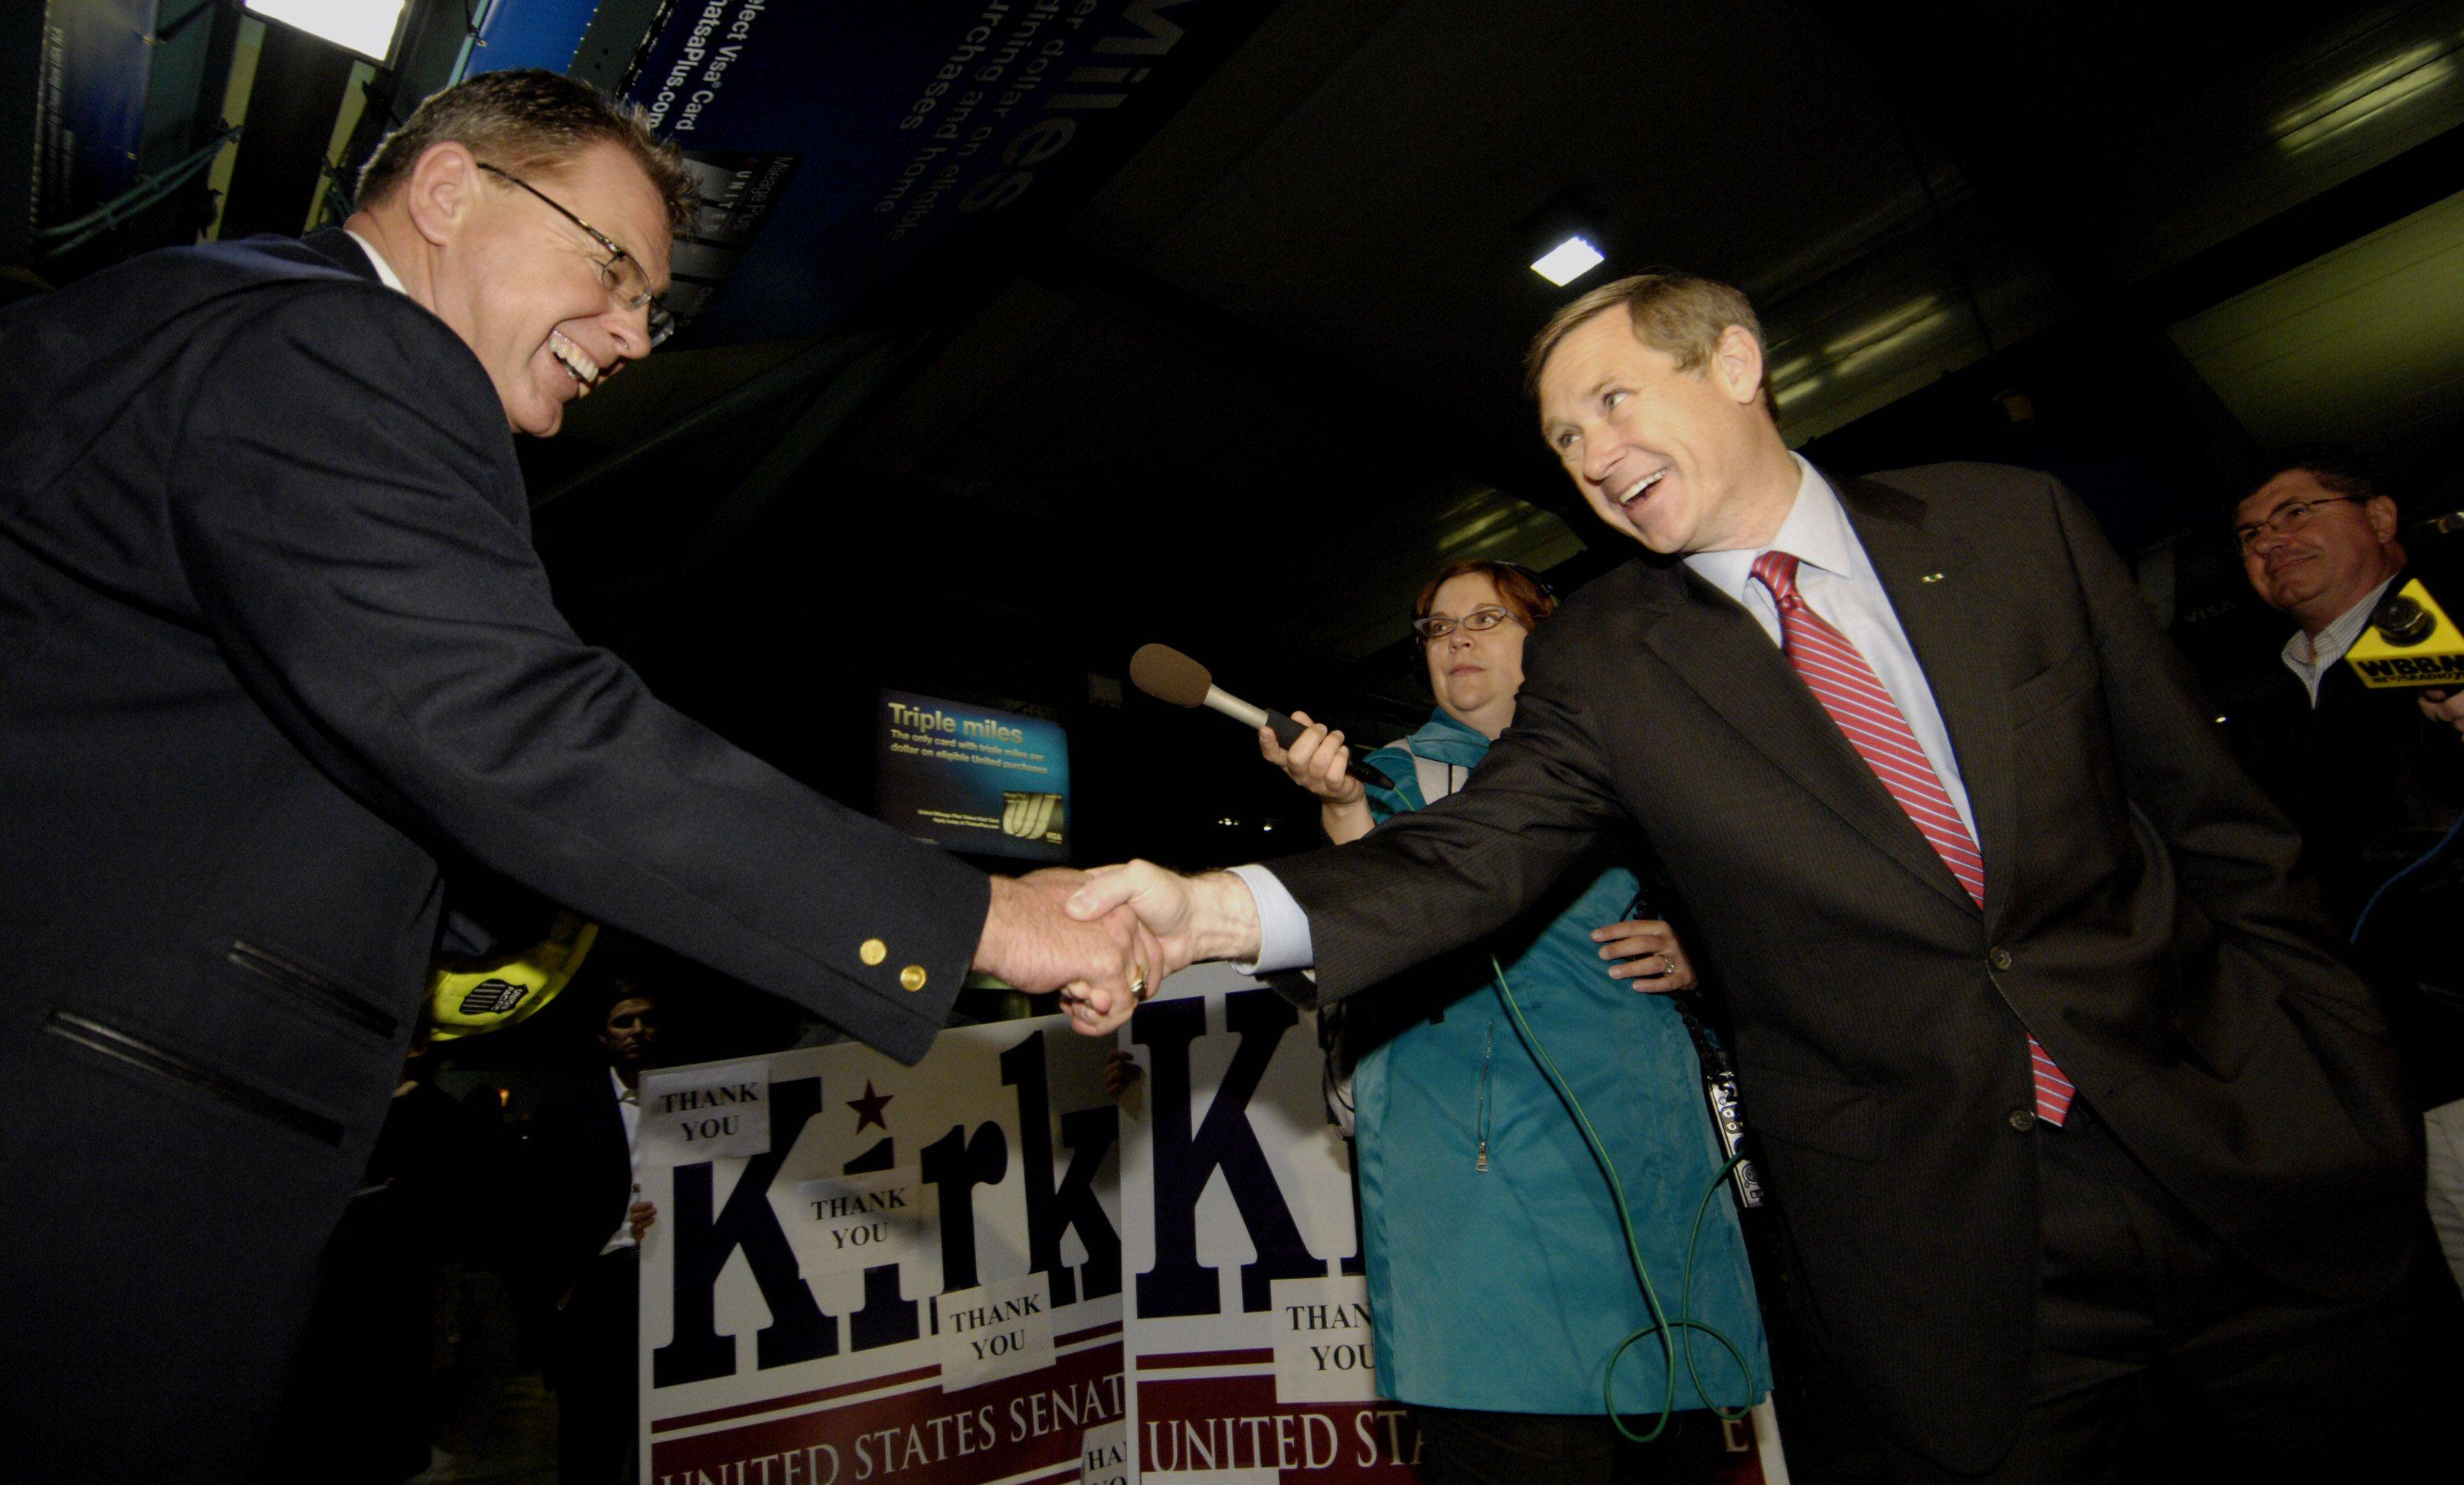 U.S. Senator-elect Mark Kirk greets commuters at the Ogilvie Transportation Center in Chicago.